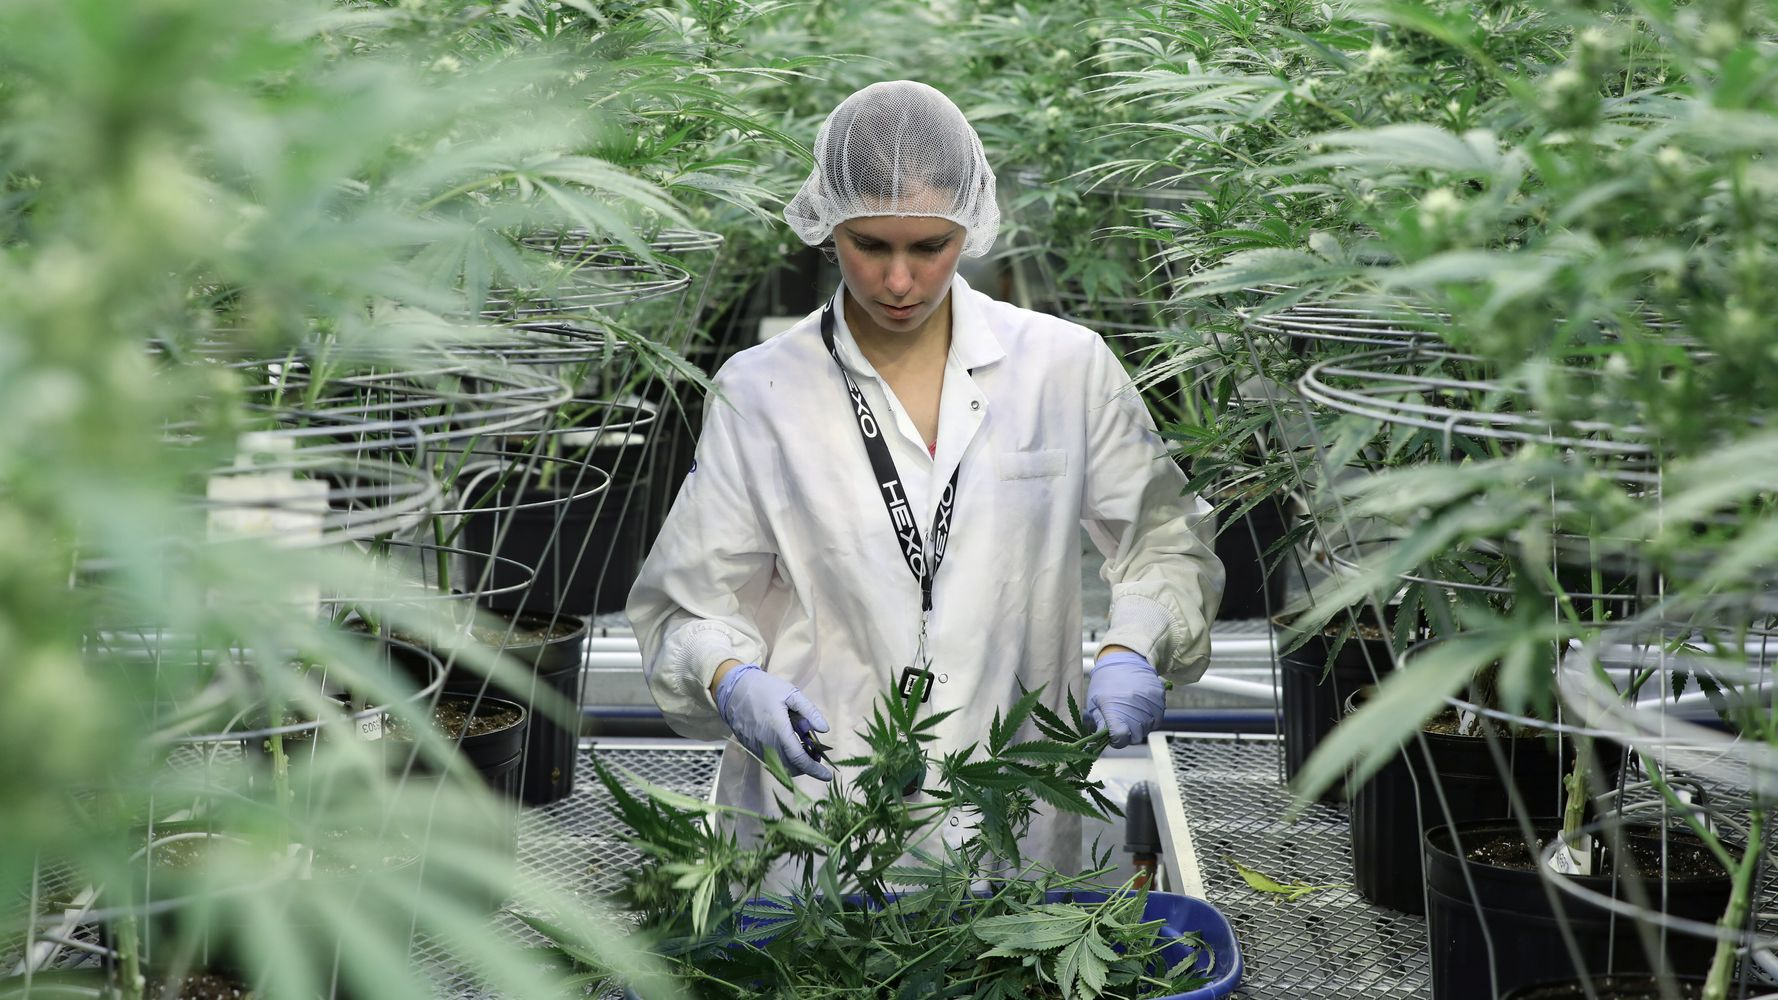 U.S. Cannabis Producers Fear Canada Will 'Dominate The Industry'